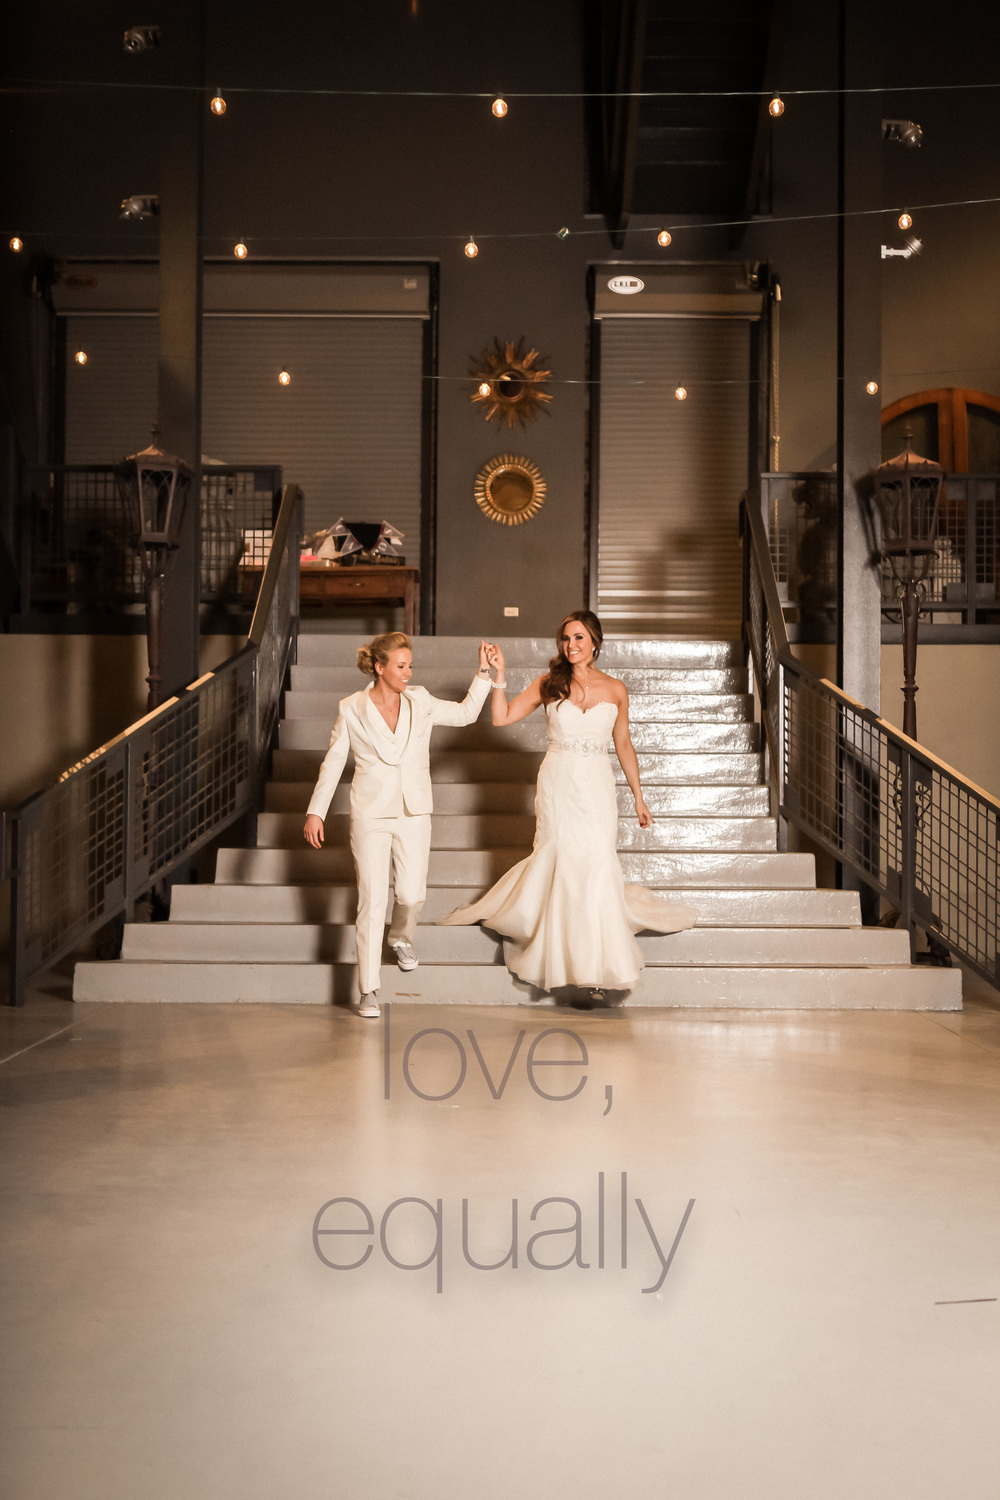 valentines day hotel monaco chicago gay marriage equality brides architecual artifacts glam two brides -021.jpg